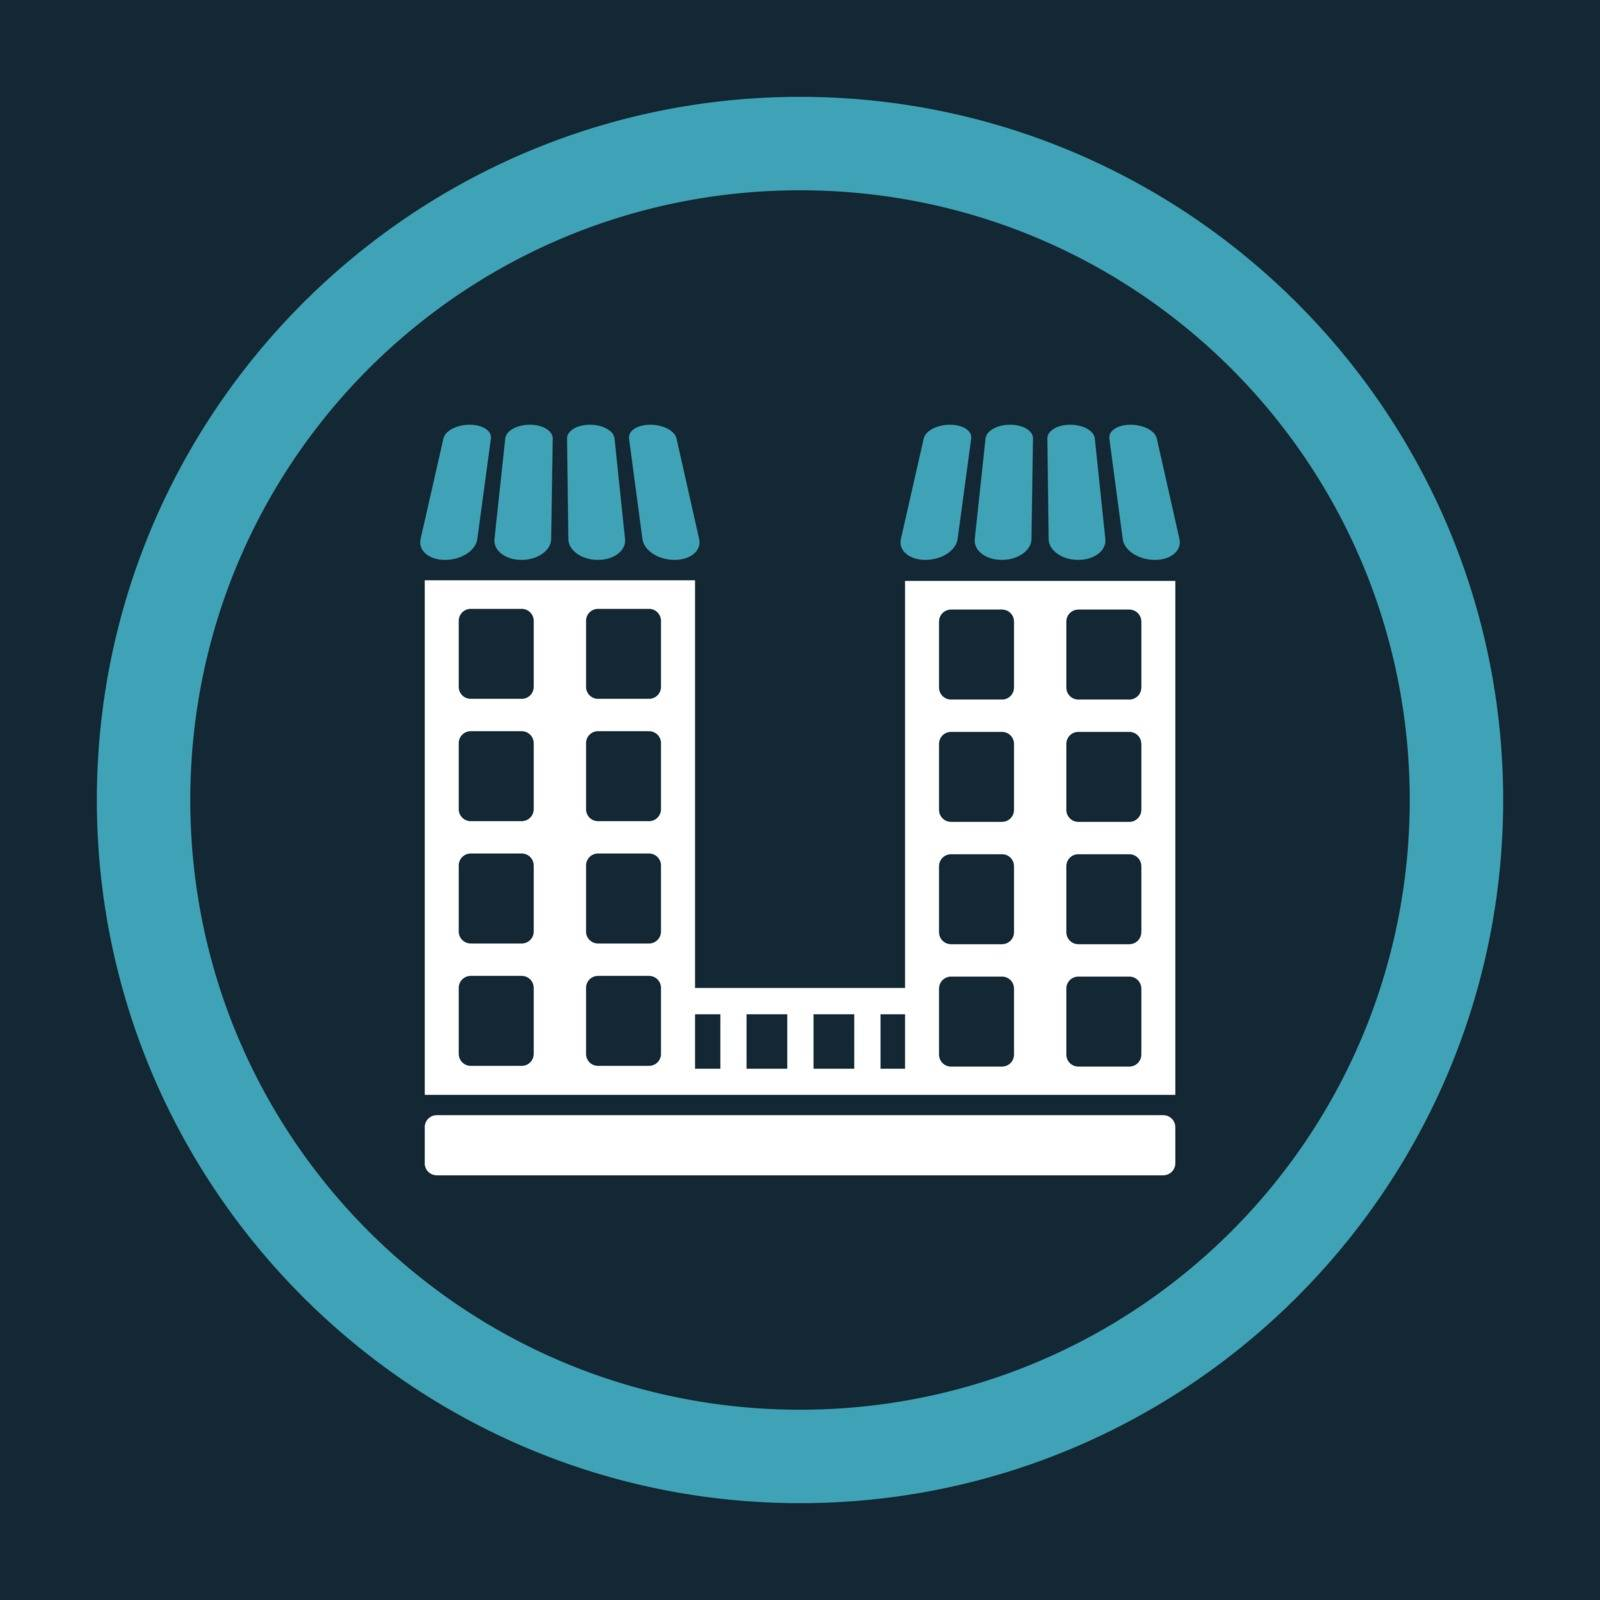 Company vector icon. This flat rounded symbol uses blue and white colors and isolated on a dark blue background.